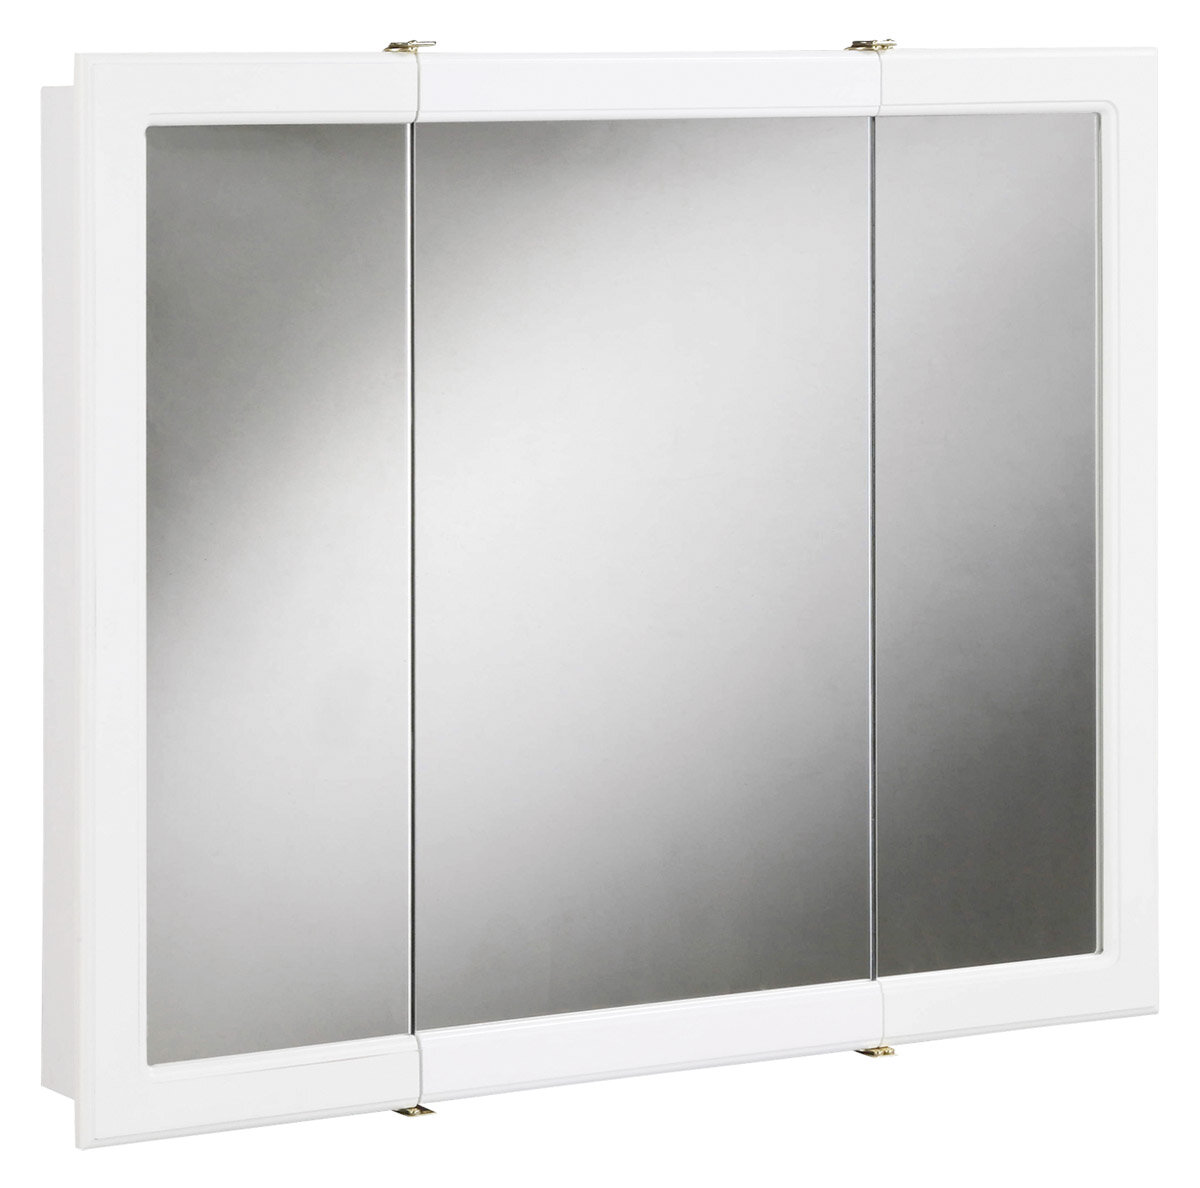 lowes medicine recessed bathroom shop rectangle x pl cabinet designer surface com cabinets mirrored storage in aluminum zenith at